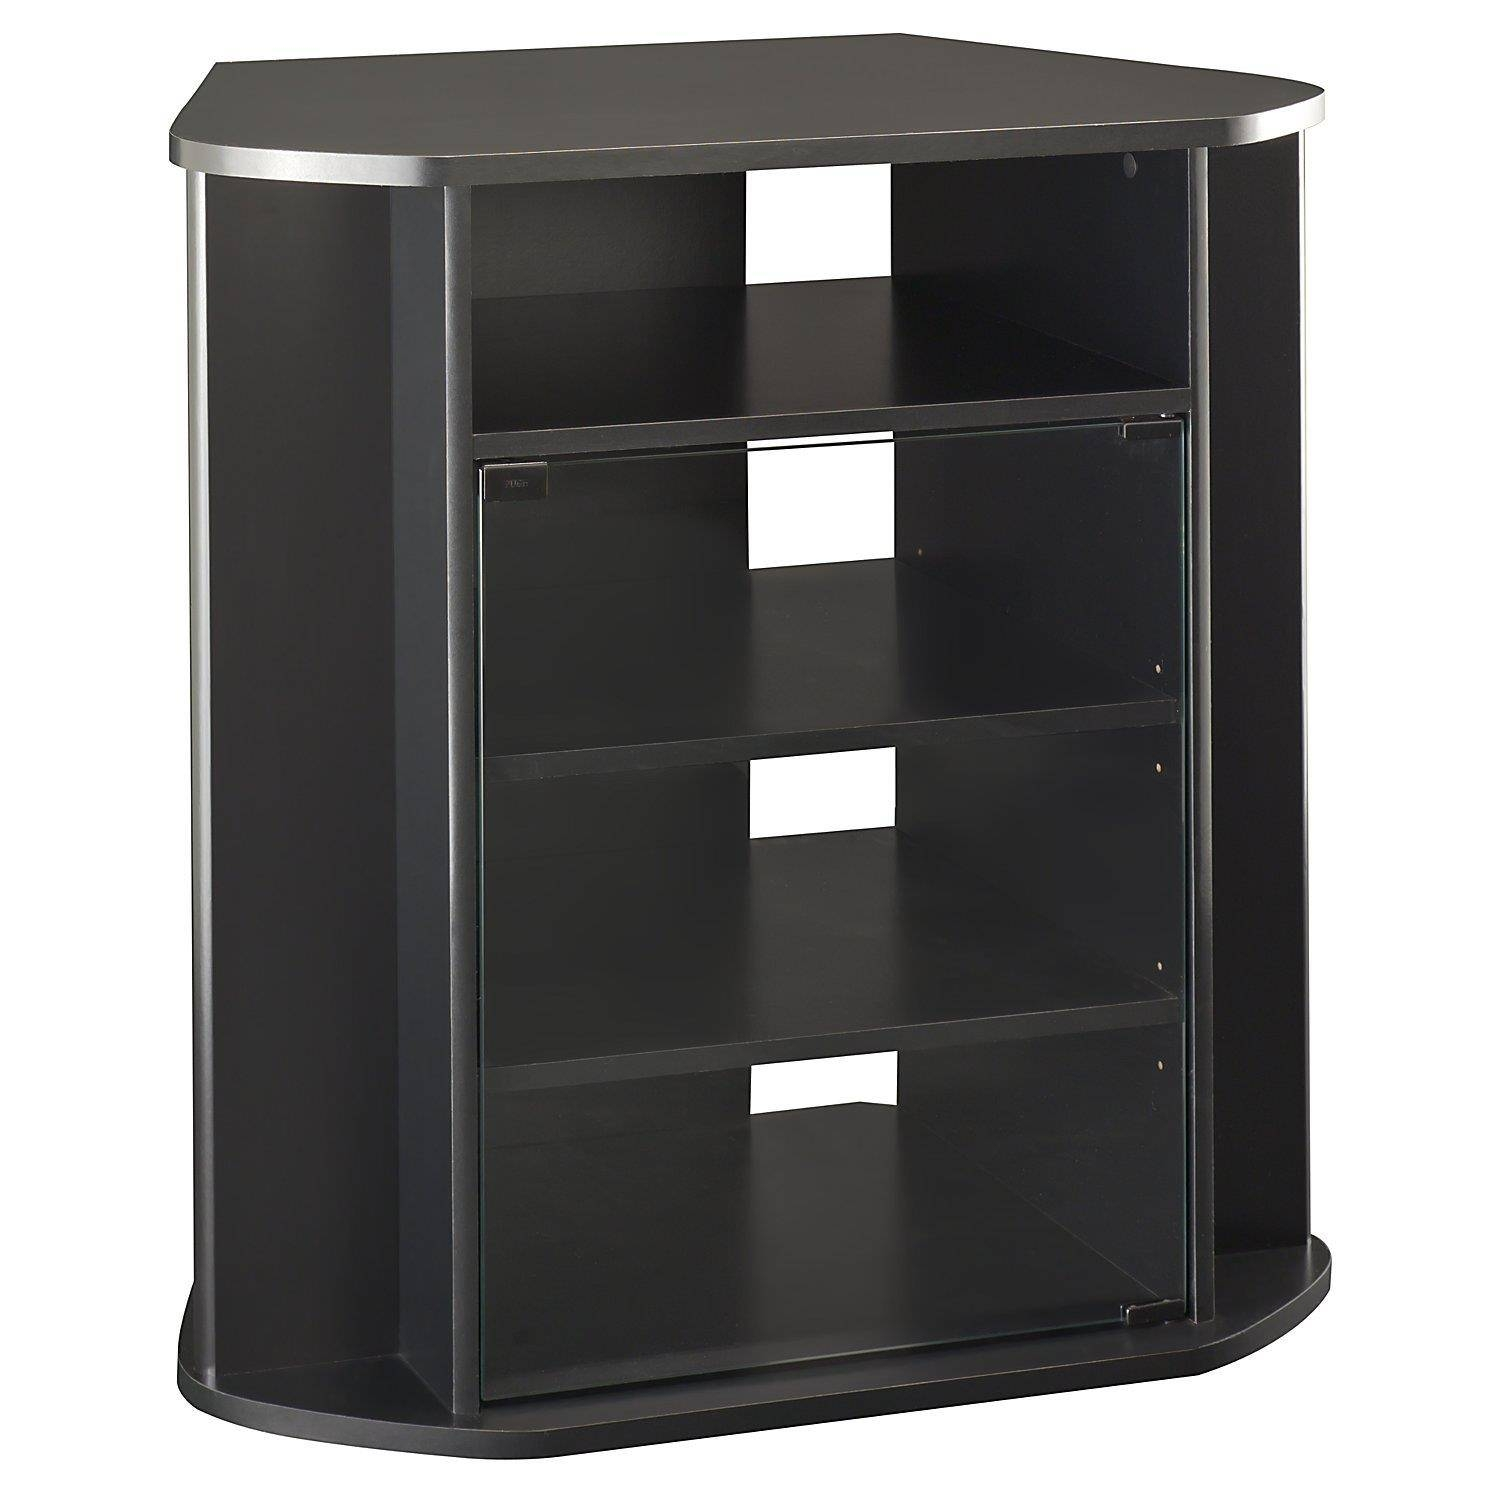 Tall Corner Tv Stand With Glass Door Cabinet In Black Color pertaining to Corner Tv Cabinets With Glass Doors (Image 13 of 15)